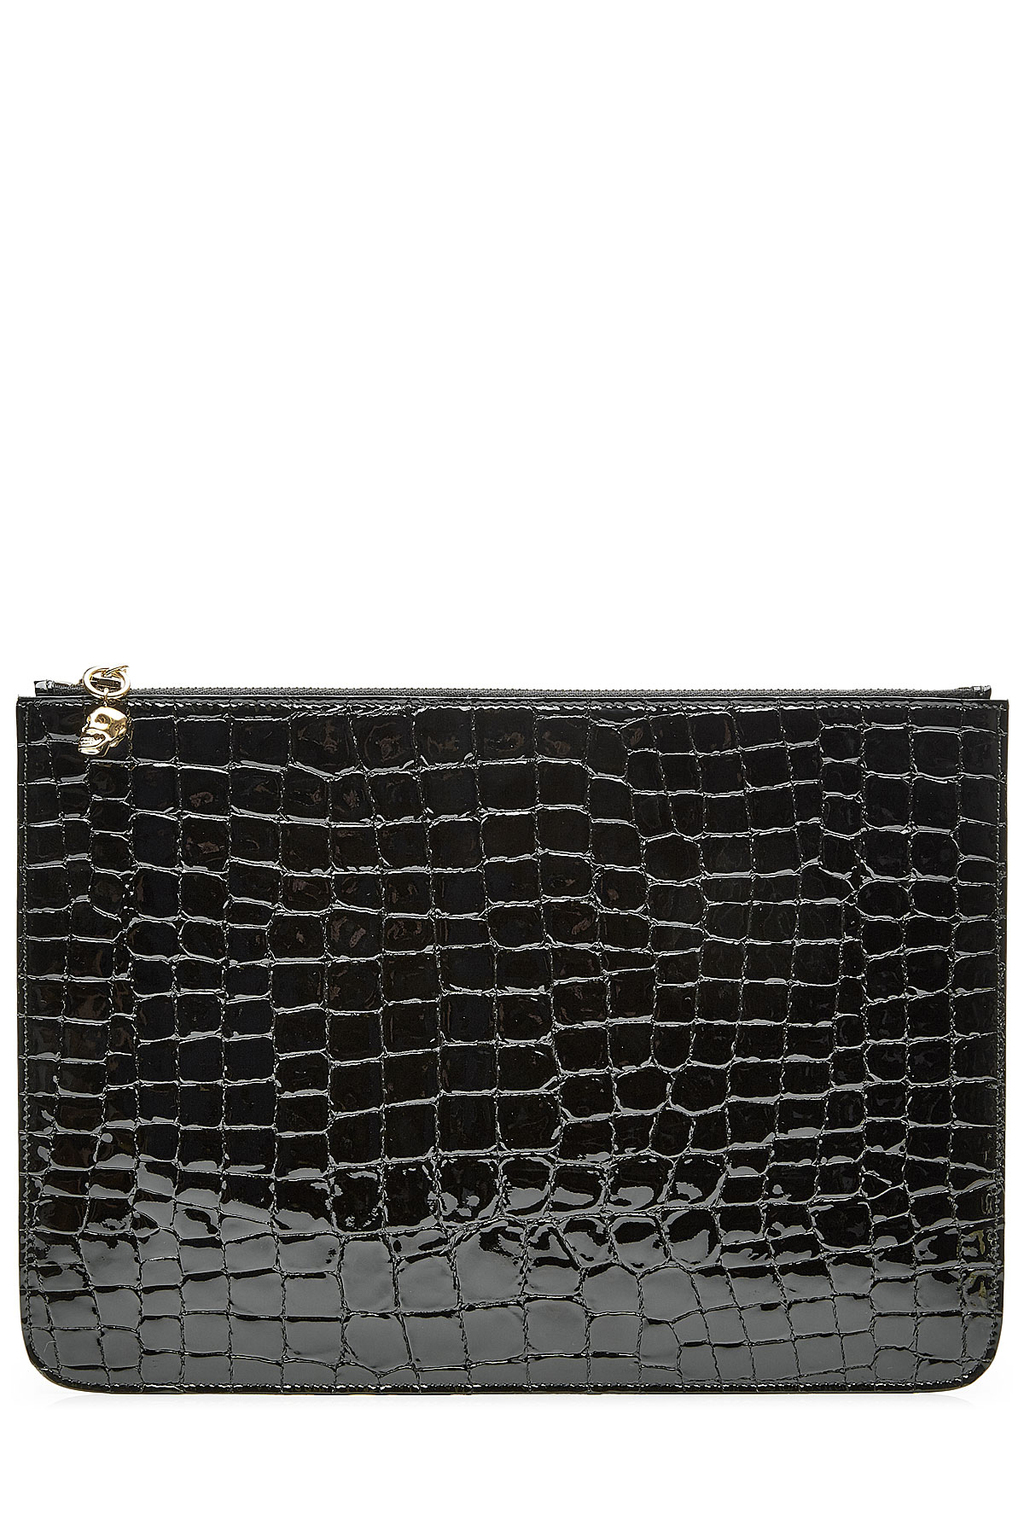 Embossed Leather Zipped Pouch - predominant colour: black; occasions: evening; type of pattern: standard; style: clutch; length: hand carry; size: standard; material: leather; pattern: plain; finish: patent; season: s/s 2016; wardrobe: event